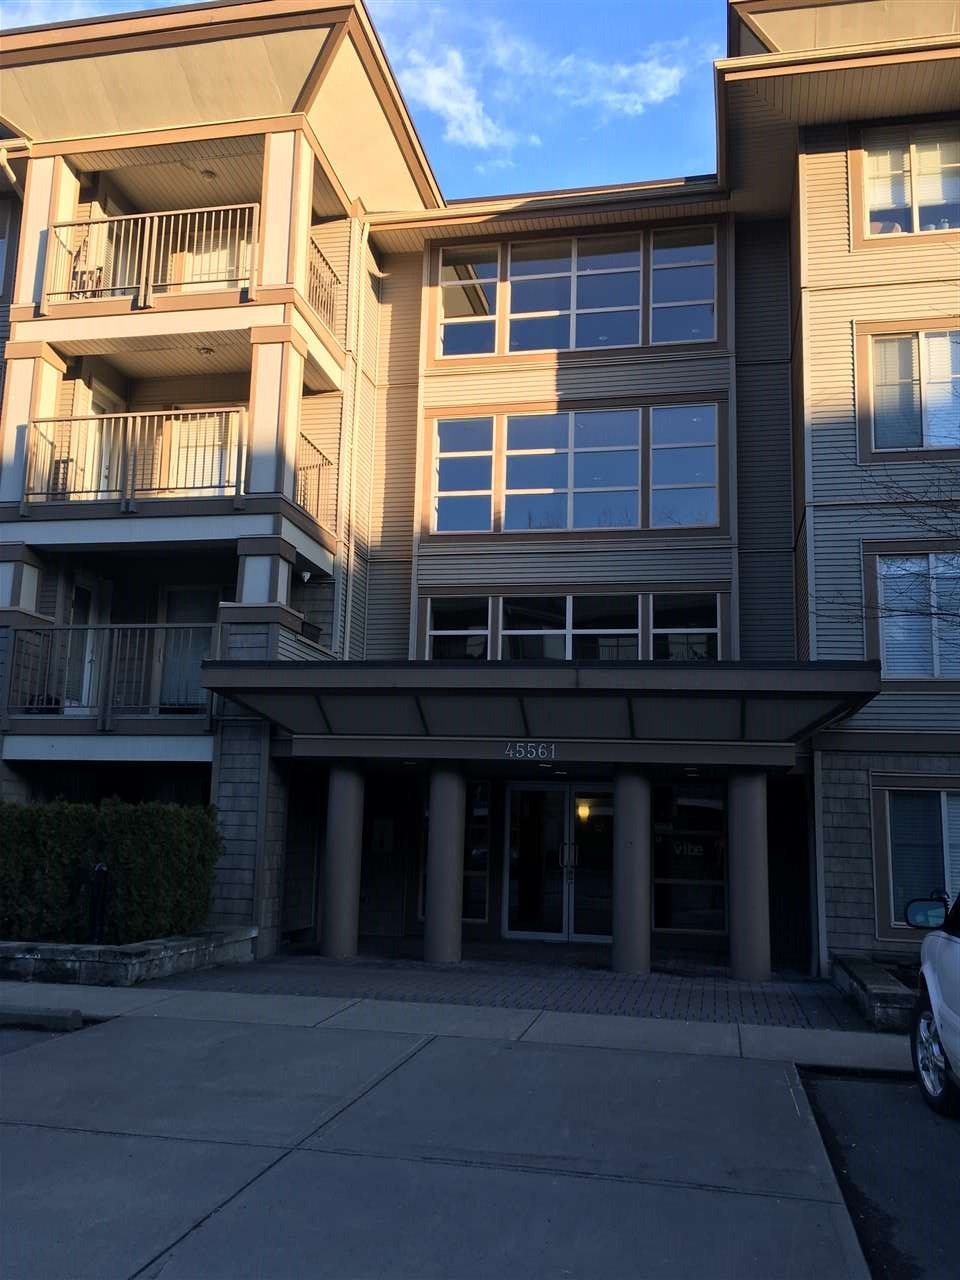 Sold: 404 - 45561 Yale Road, Chilliwack, BC